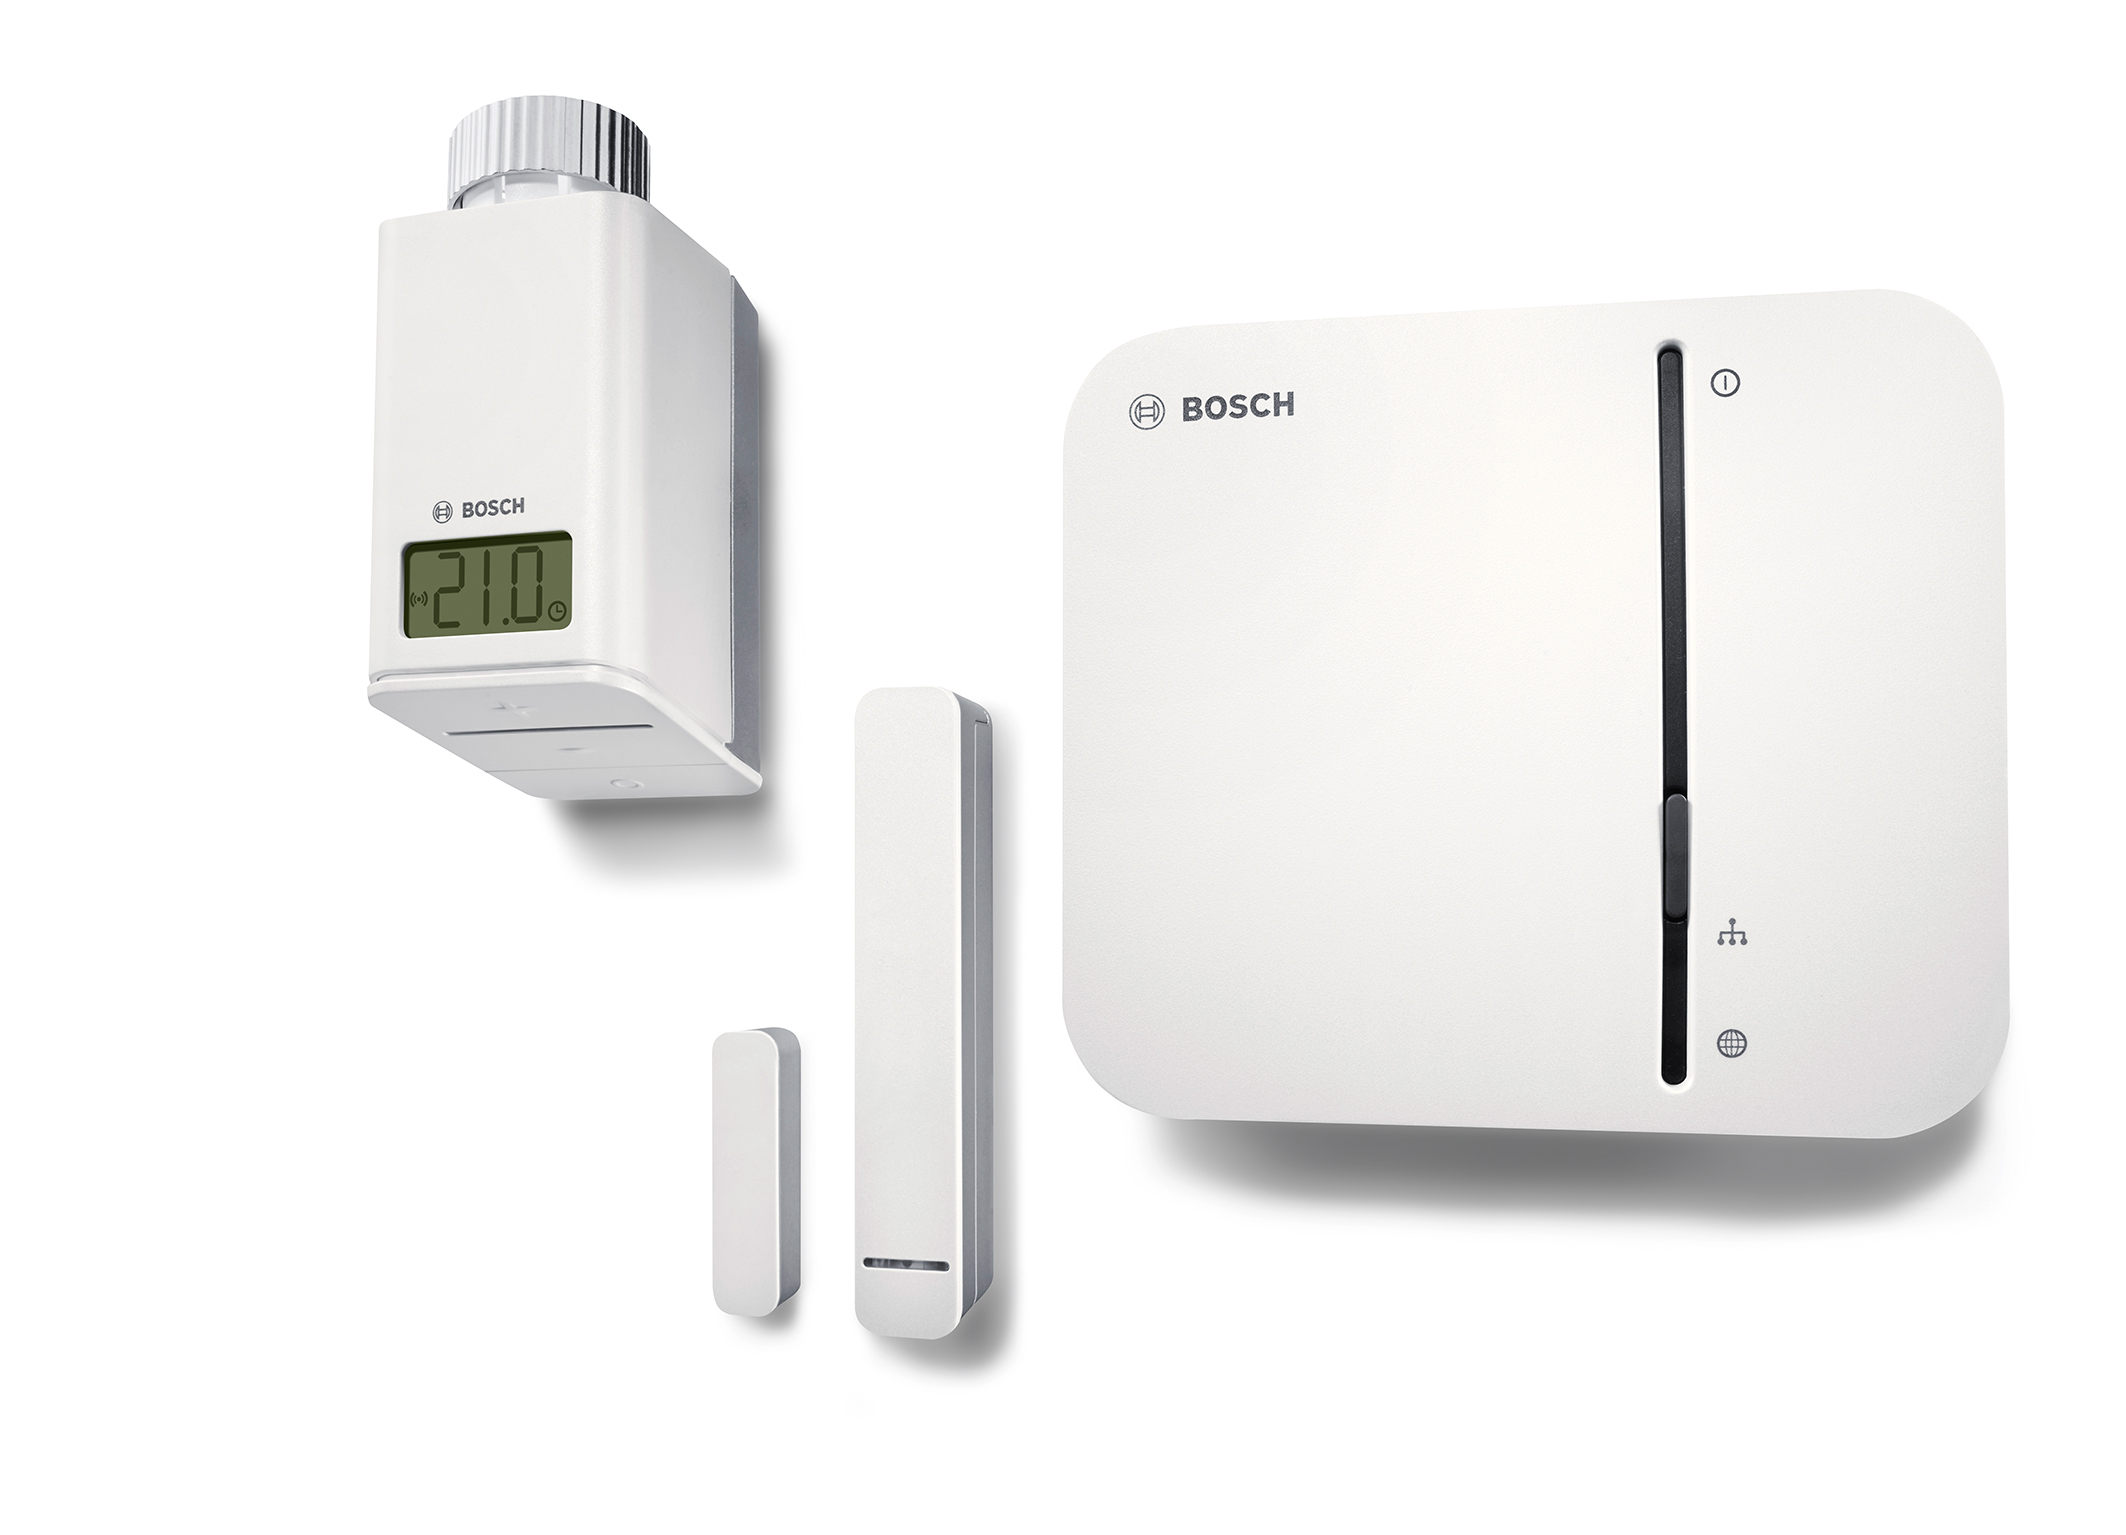 Bosch smart-home products <br>Smart thermostat, door-window contact, smart home controller